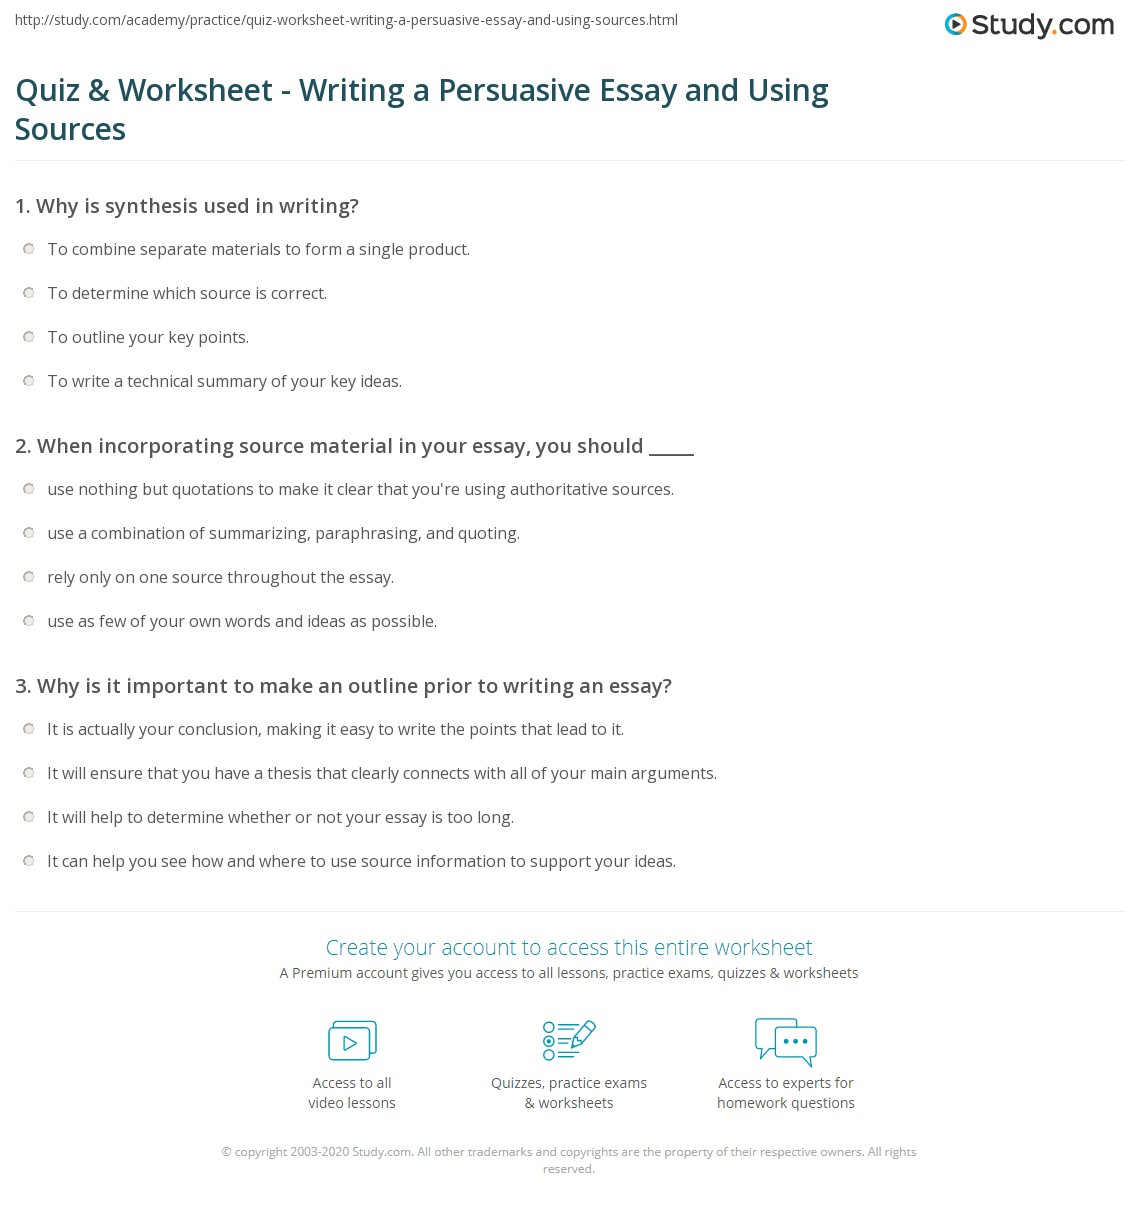 quiz worksheet writing a persuasive essay and using sources  print how to write a persuasive essay and use several sources worksheet